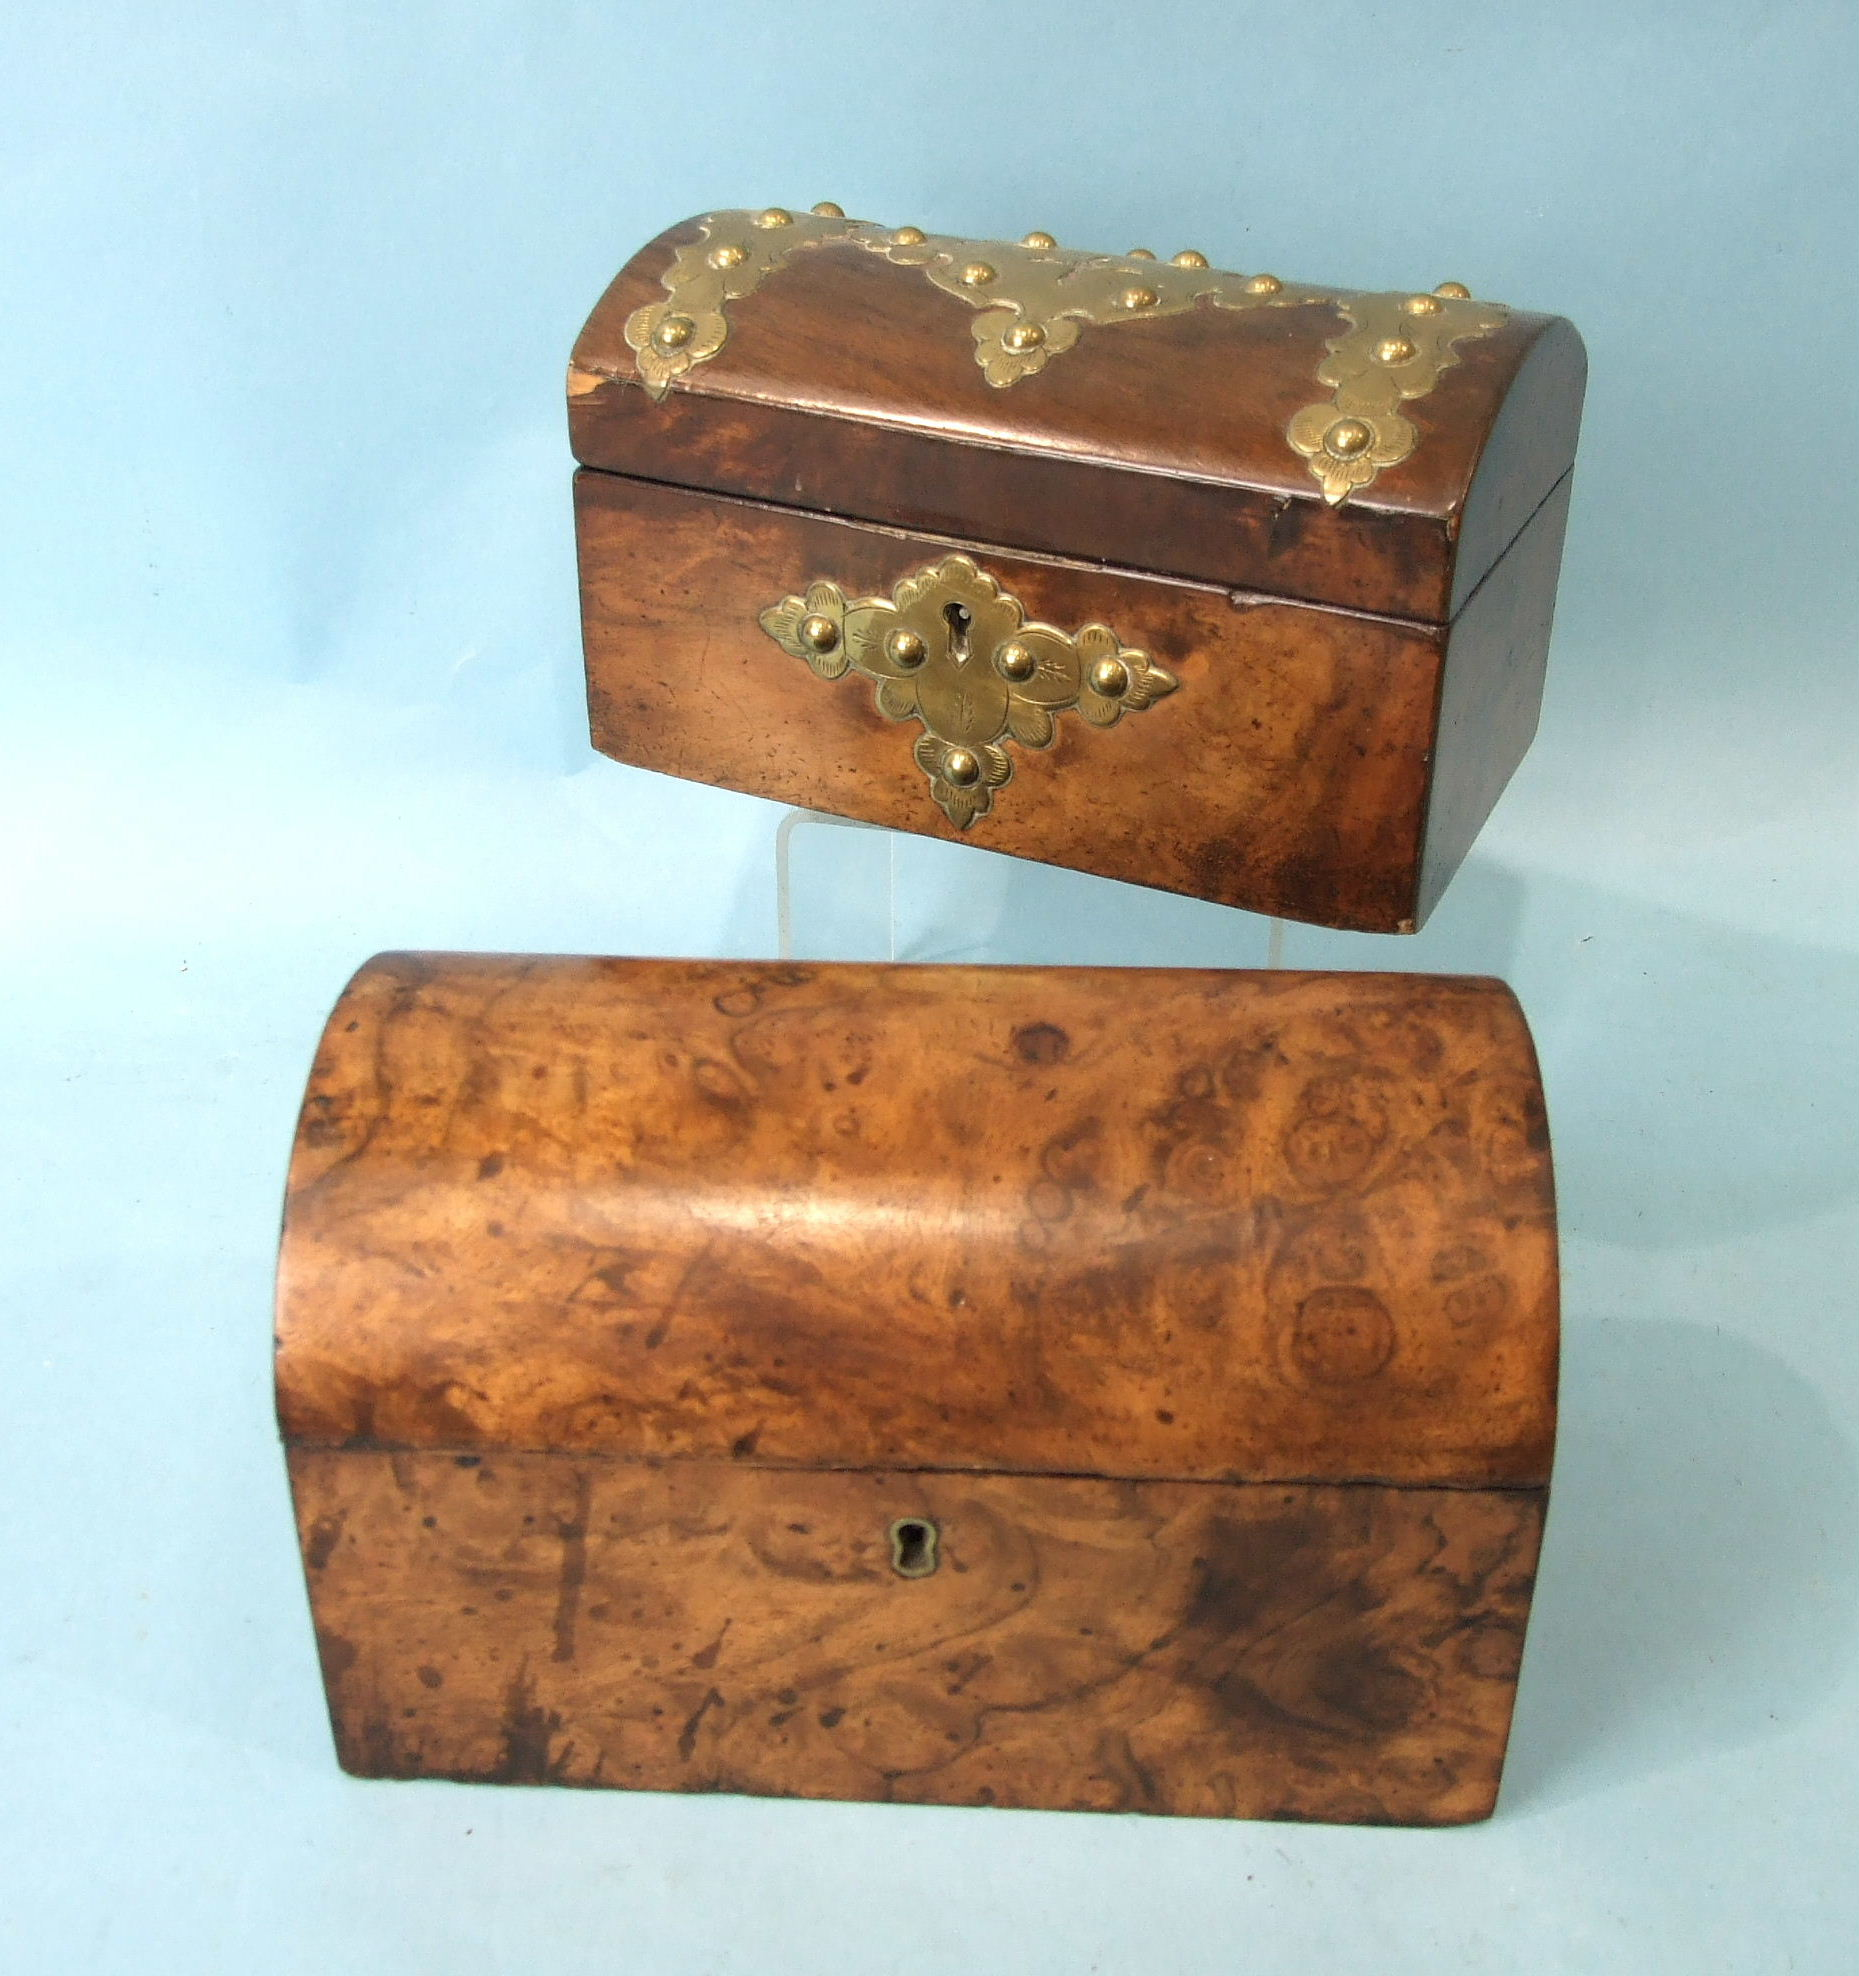 A Victorian burr walnut two-division tea caddy with domed lid, 21cm wide and a brass-bound walnut